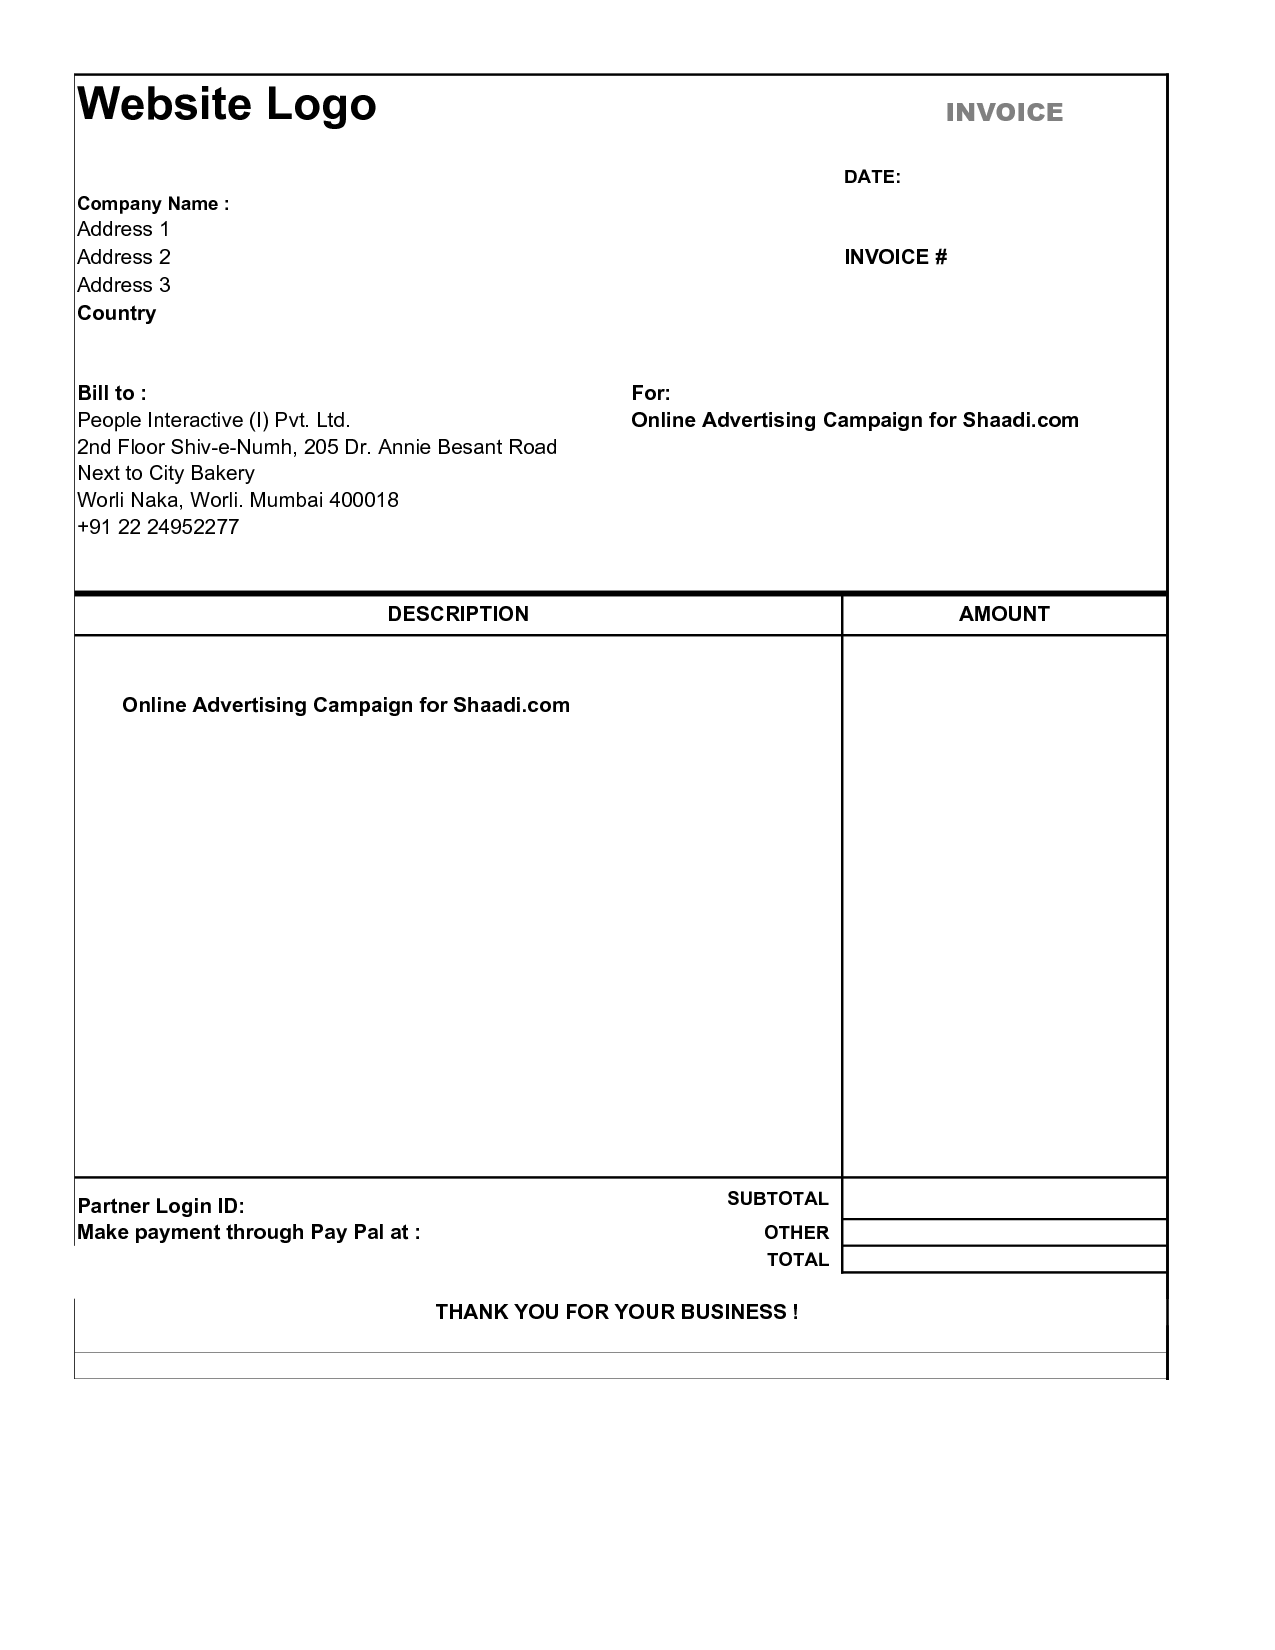 Create Invoices For Free Pdf Simple Invoice Form  Invoice Example Plan Canada Tax Receipt Word with Faulty Goods No Receipt Word Simple Invoice Form Simple Invoice Form Technical Support Resume Examples  Short Term Microsoft Word Template Template Basic Uk Free Format For  Download Doc  Freight Invoice Sample Excel